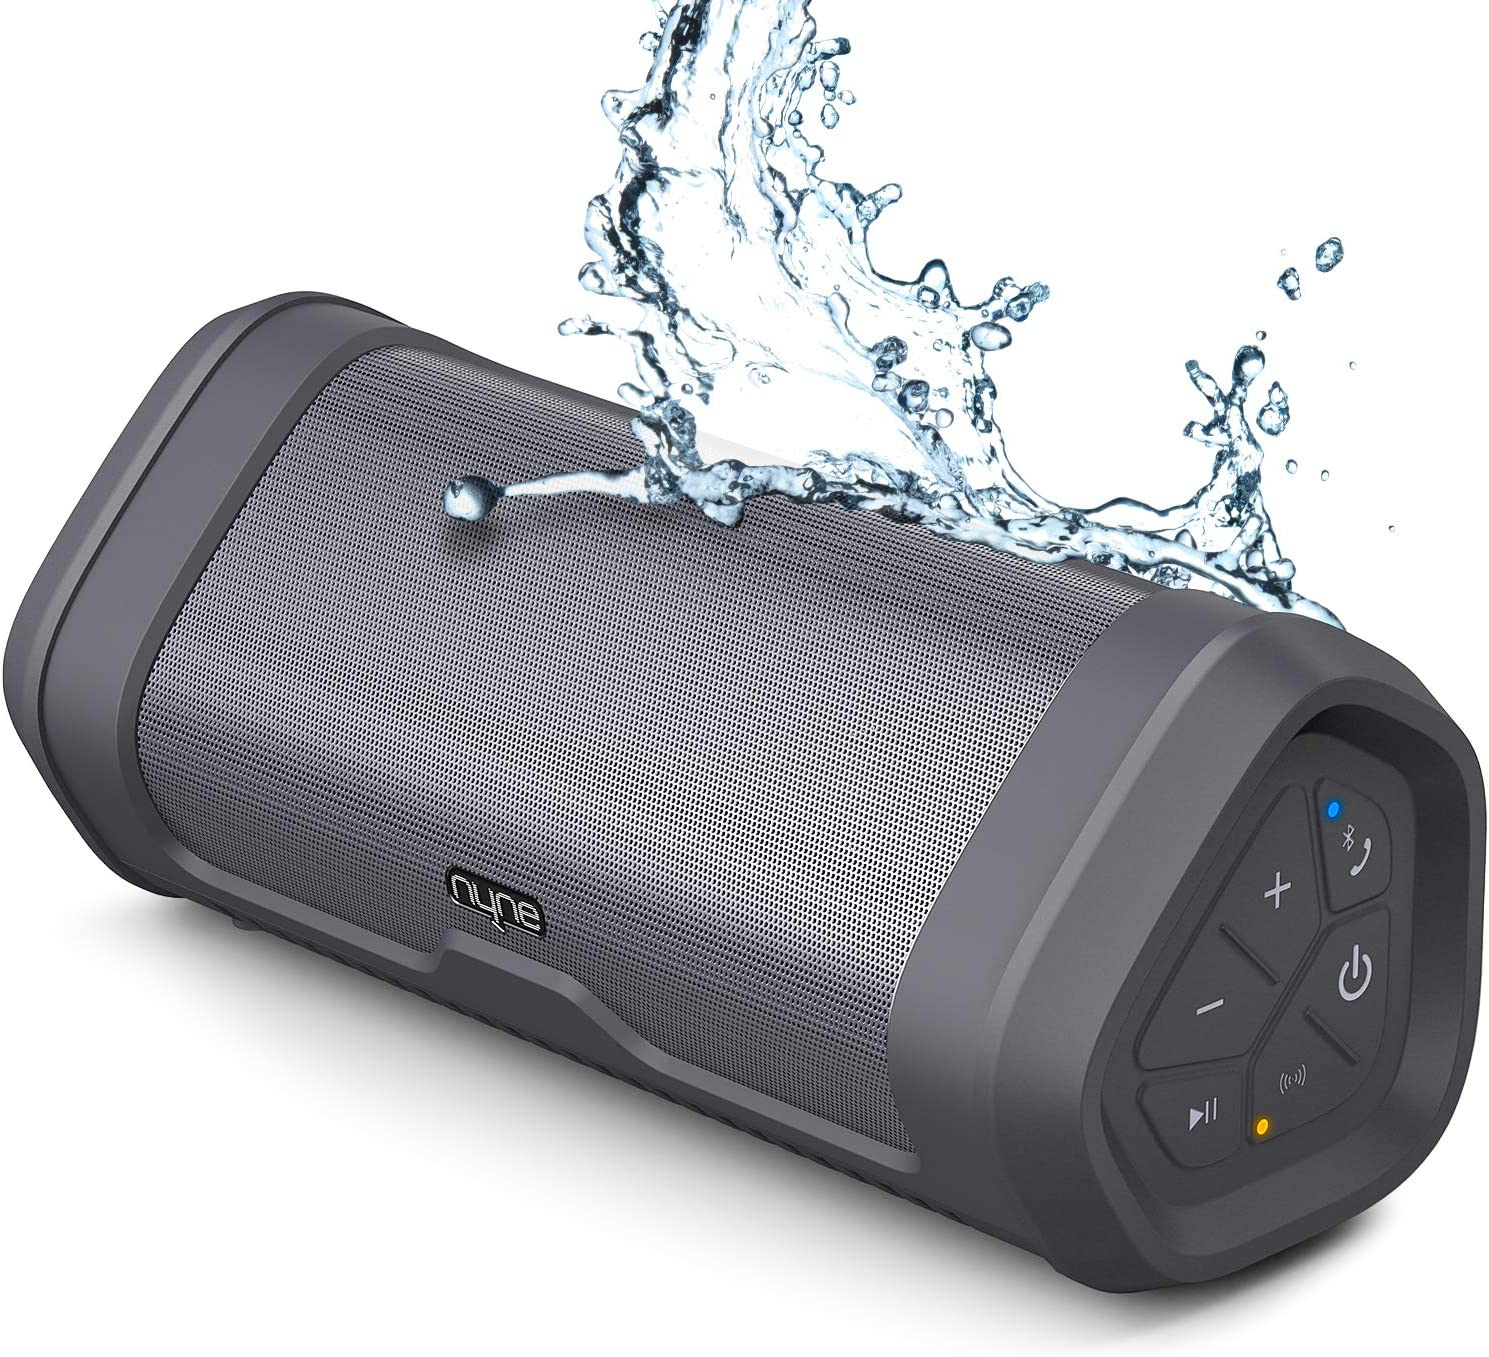 NYNE Boost Portable Bluetooth Speakers with Premium Stereo Sound - IP67 Water & Dust Proof, 20 Hours Play-time, 100 ft Range, Built-in Power Bank and Mic, Loud Wireless Speaker,Grey